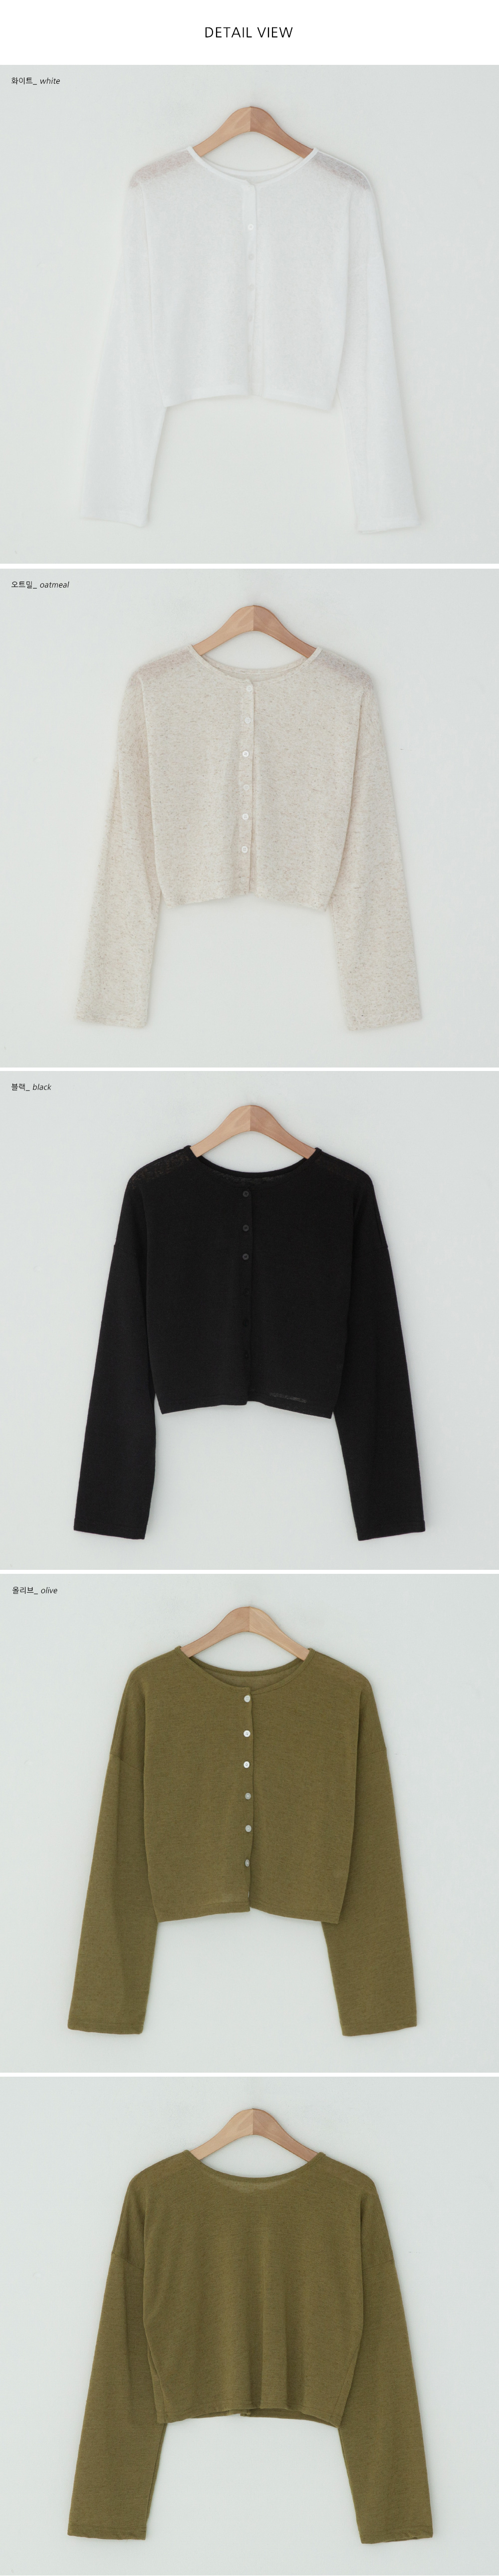 Our two-way cropped cardigan